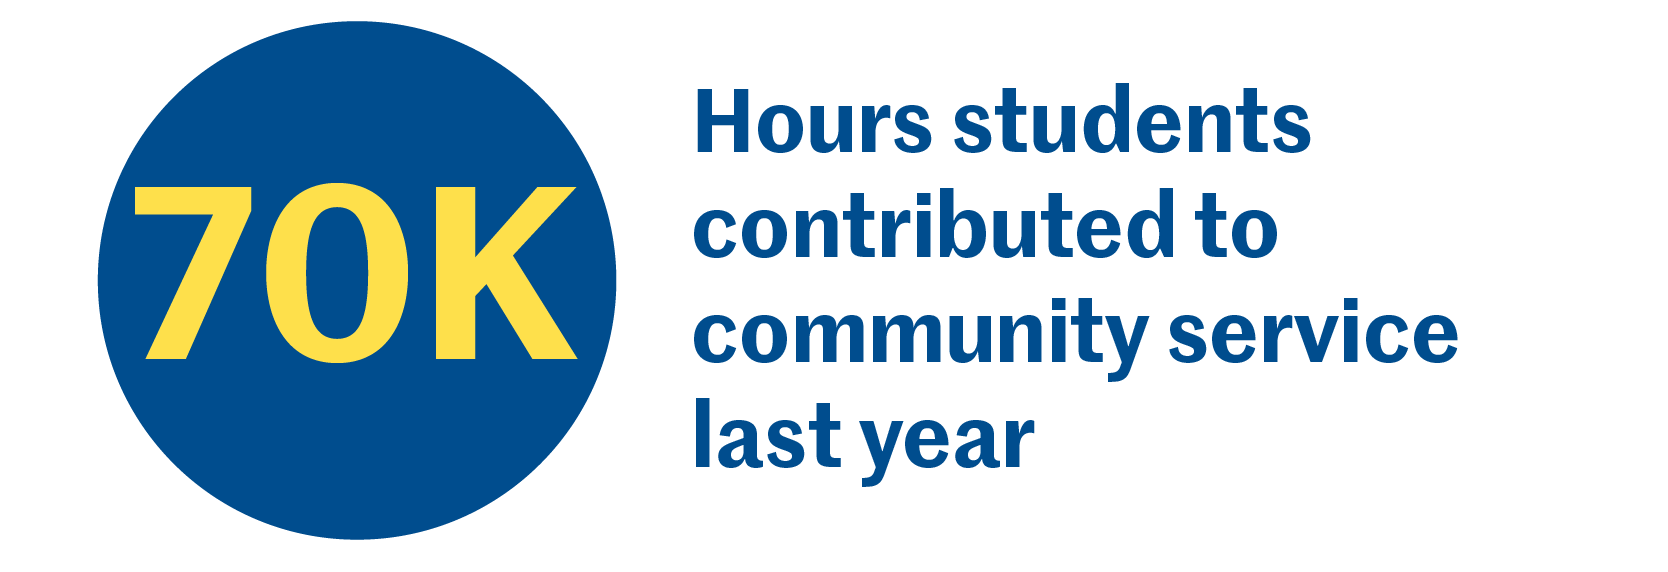 70k hours students contributed to community service last year